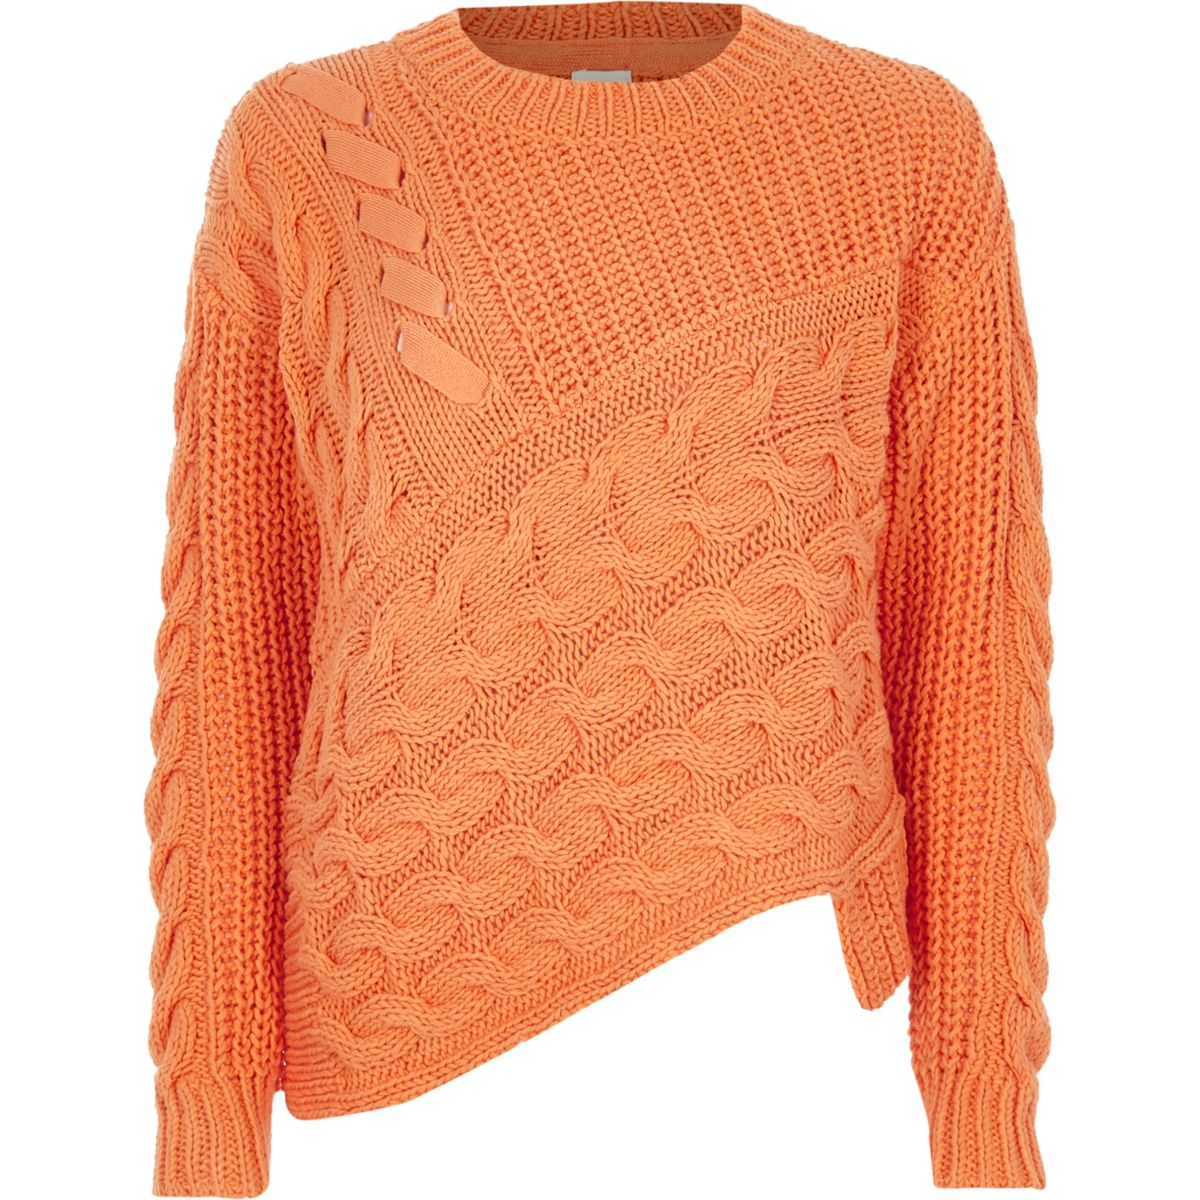 Orange cable knit asymmetric hem sweater